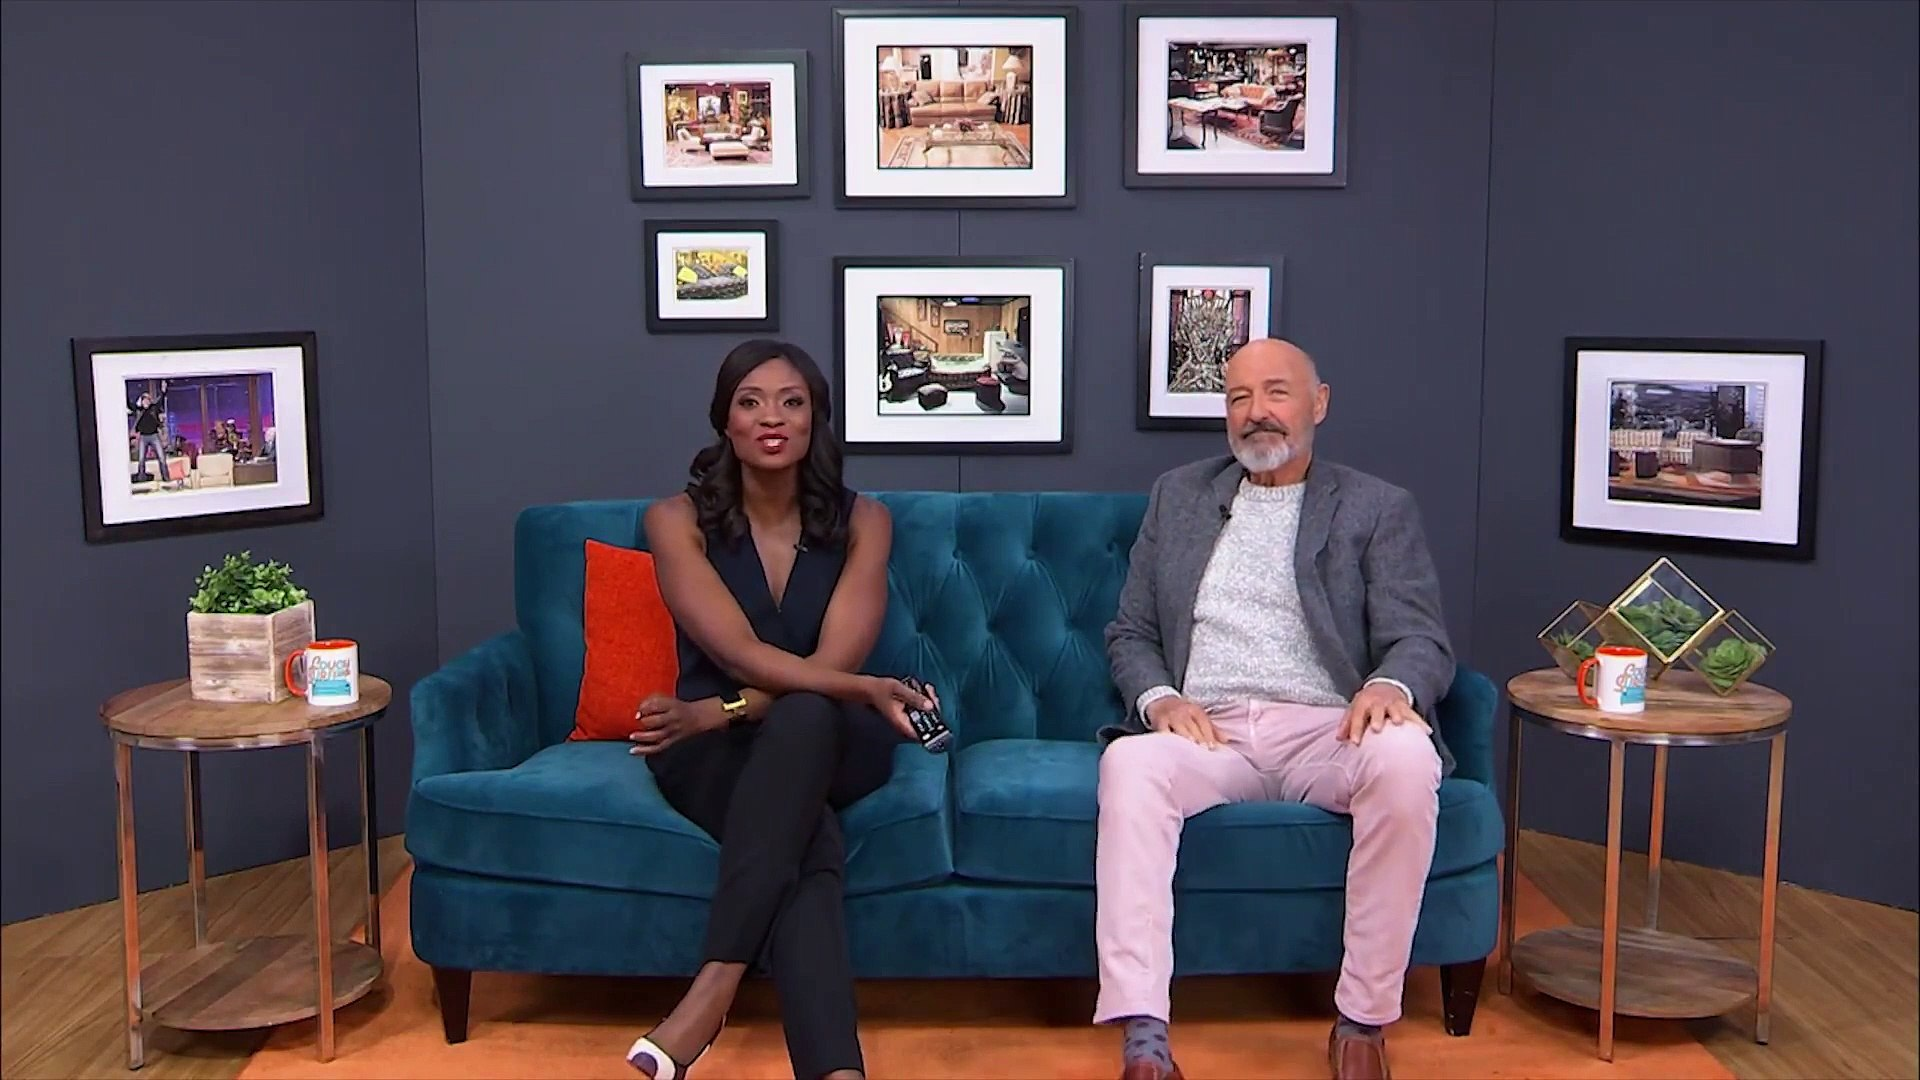 Terry O'Quinn On What He Really Thought About The 'Lost' Finale   PeopleTV   Entertai